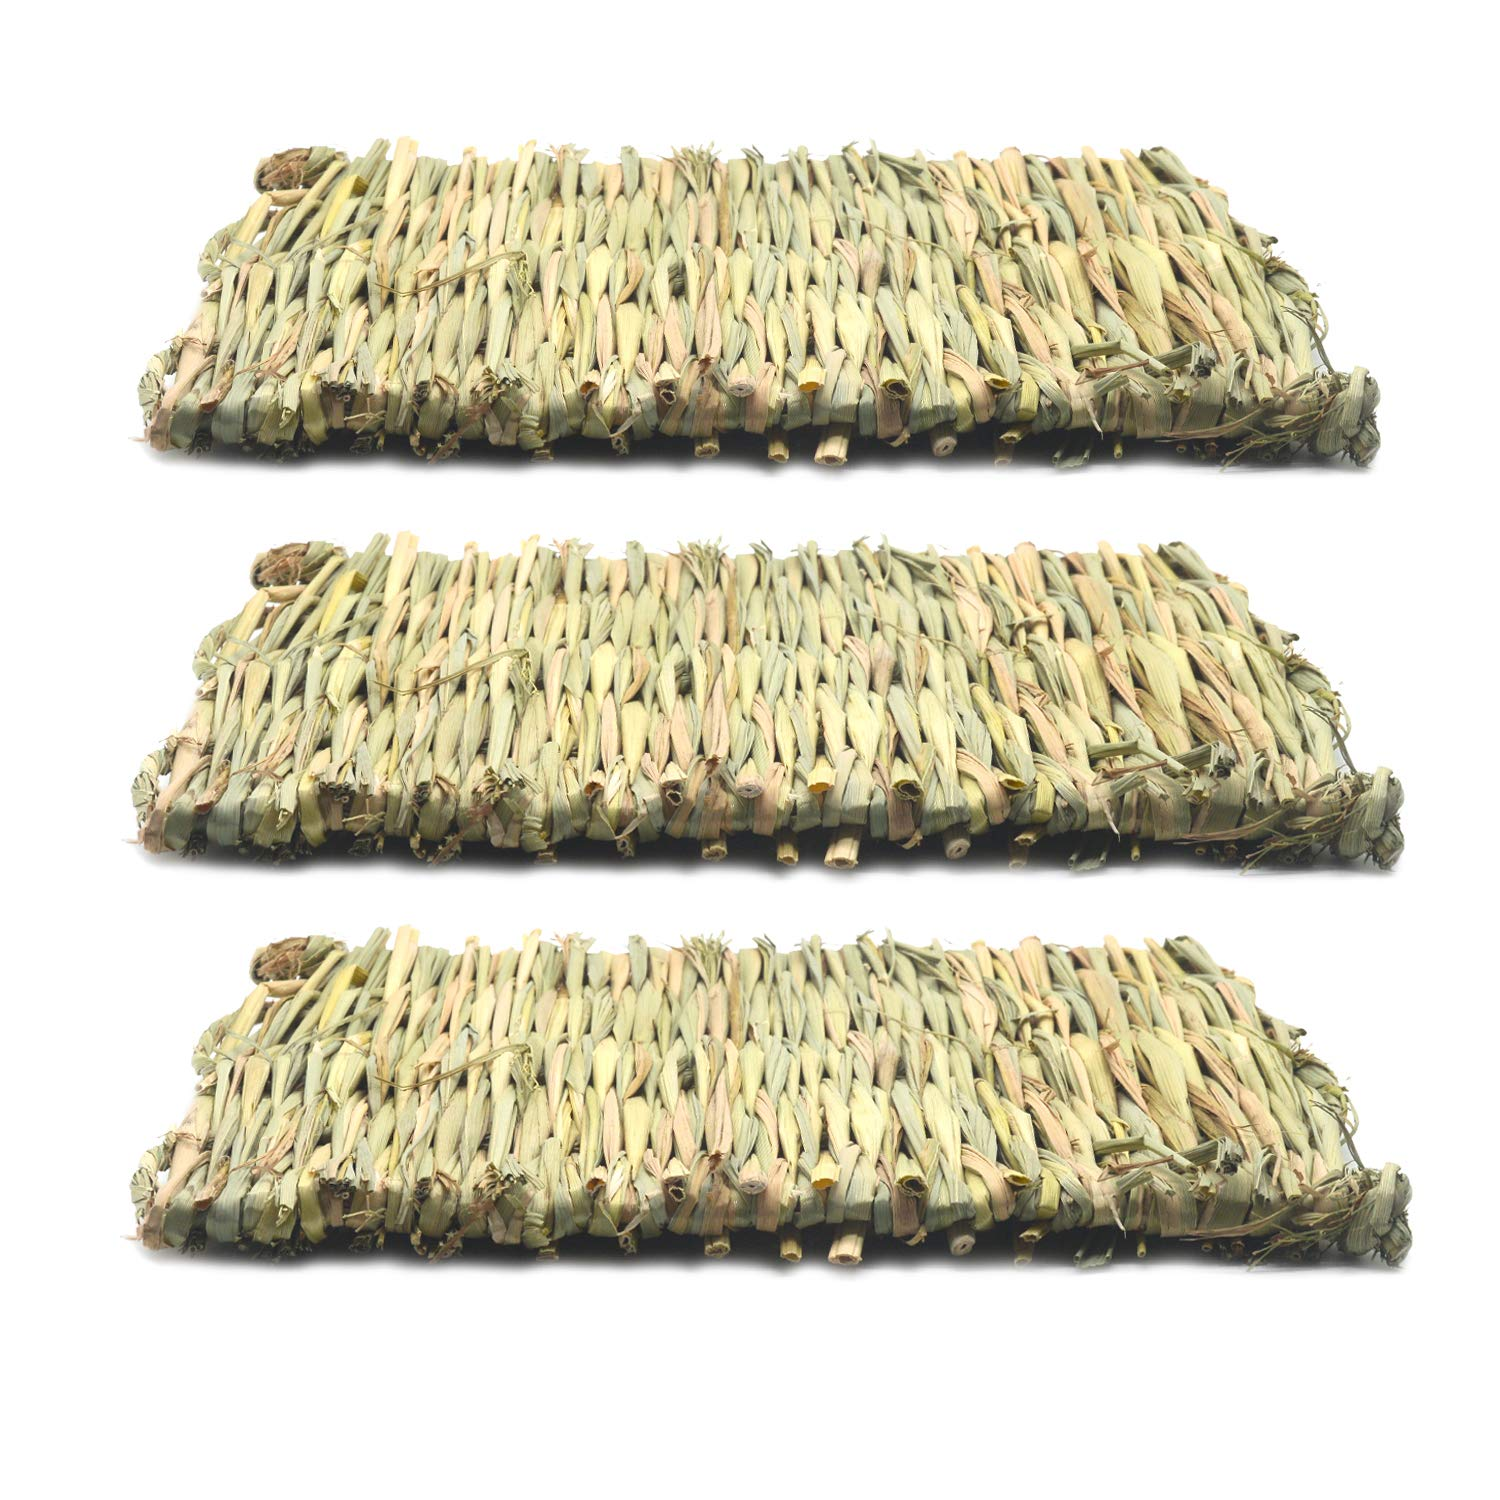 Doubletwo 3pcs Grass Mat, Woven Bed Mat for Small Animal,Chew Toy Bed Play Ball for Guinea Pig Parrot Rabbit Bunny Hamster